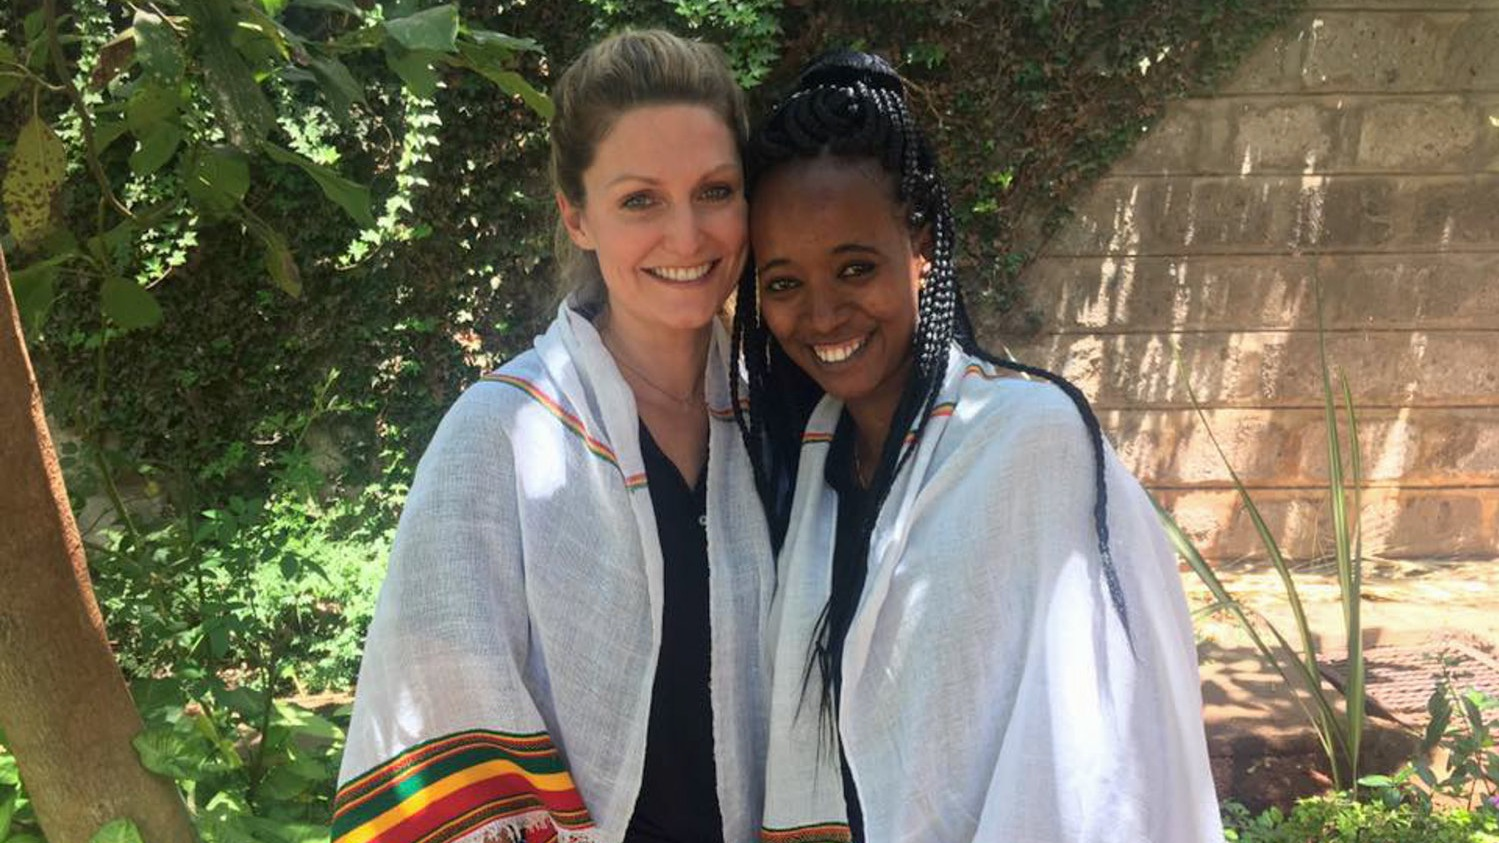 - Jeni Lowry, Founder of GLOW Foundation (Giving Life Opportunities to Women), first met the girls' school, Daraja Academy, in Kenya September 2015. After her visit, she grew to understand what was happening to a lot of them upon high school graduation. Though their scores were high enough to be admitted to college, for financial reasons, they were unable to attend. She could not sit back and do nothing and watch some of the hardest working girls she had ever seen return home to their villages to seek menial employment in a country with over 35% unemployment.